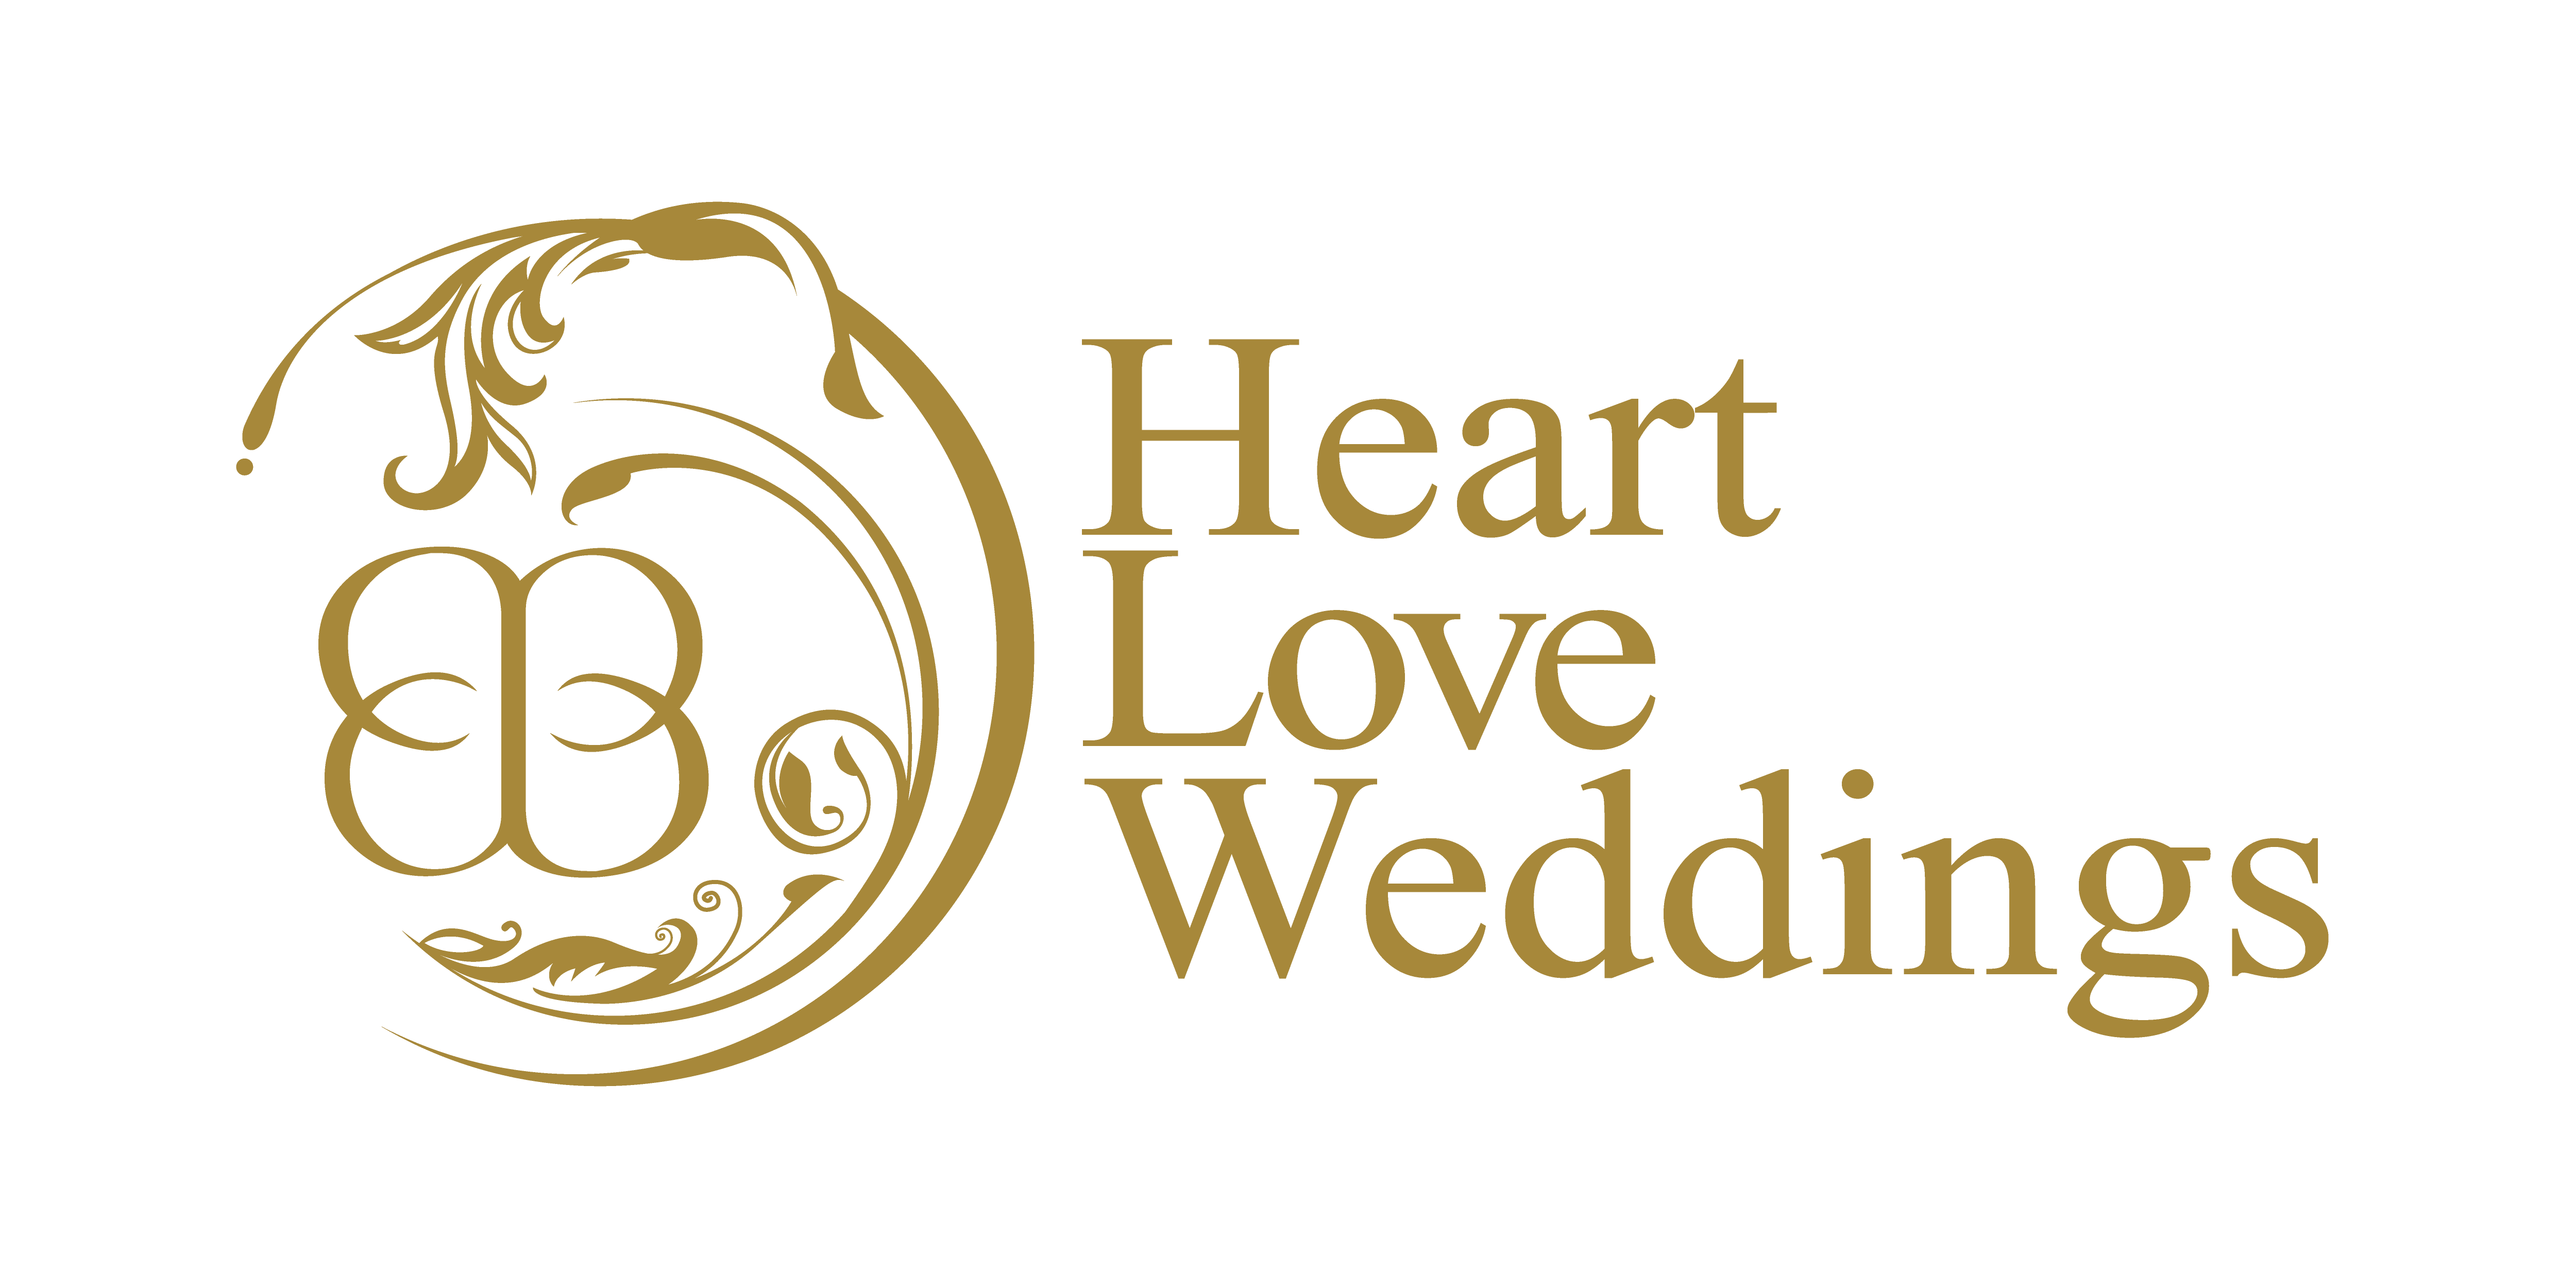 Heart, Love & Weddings